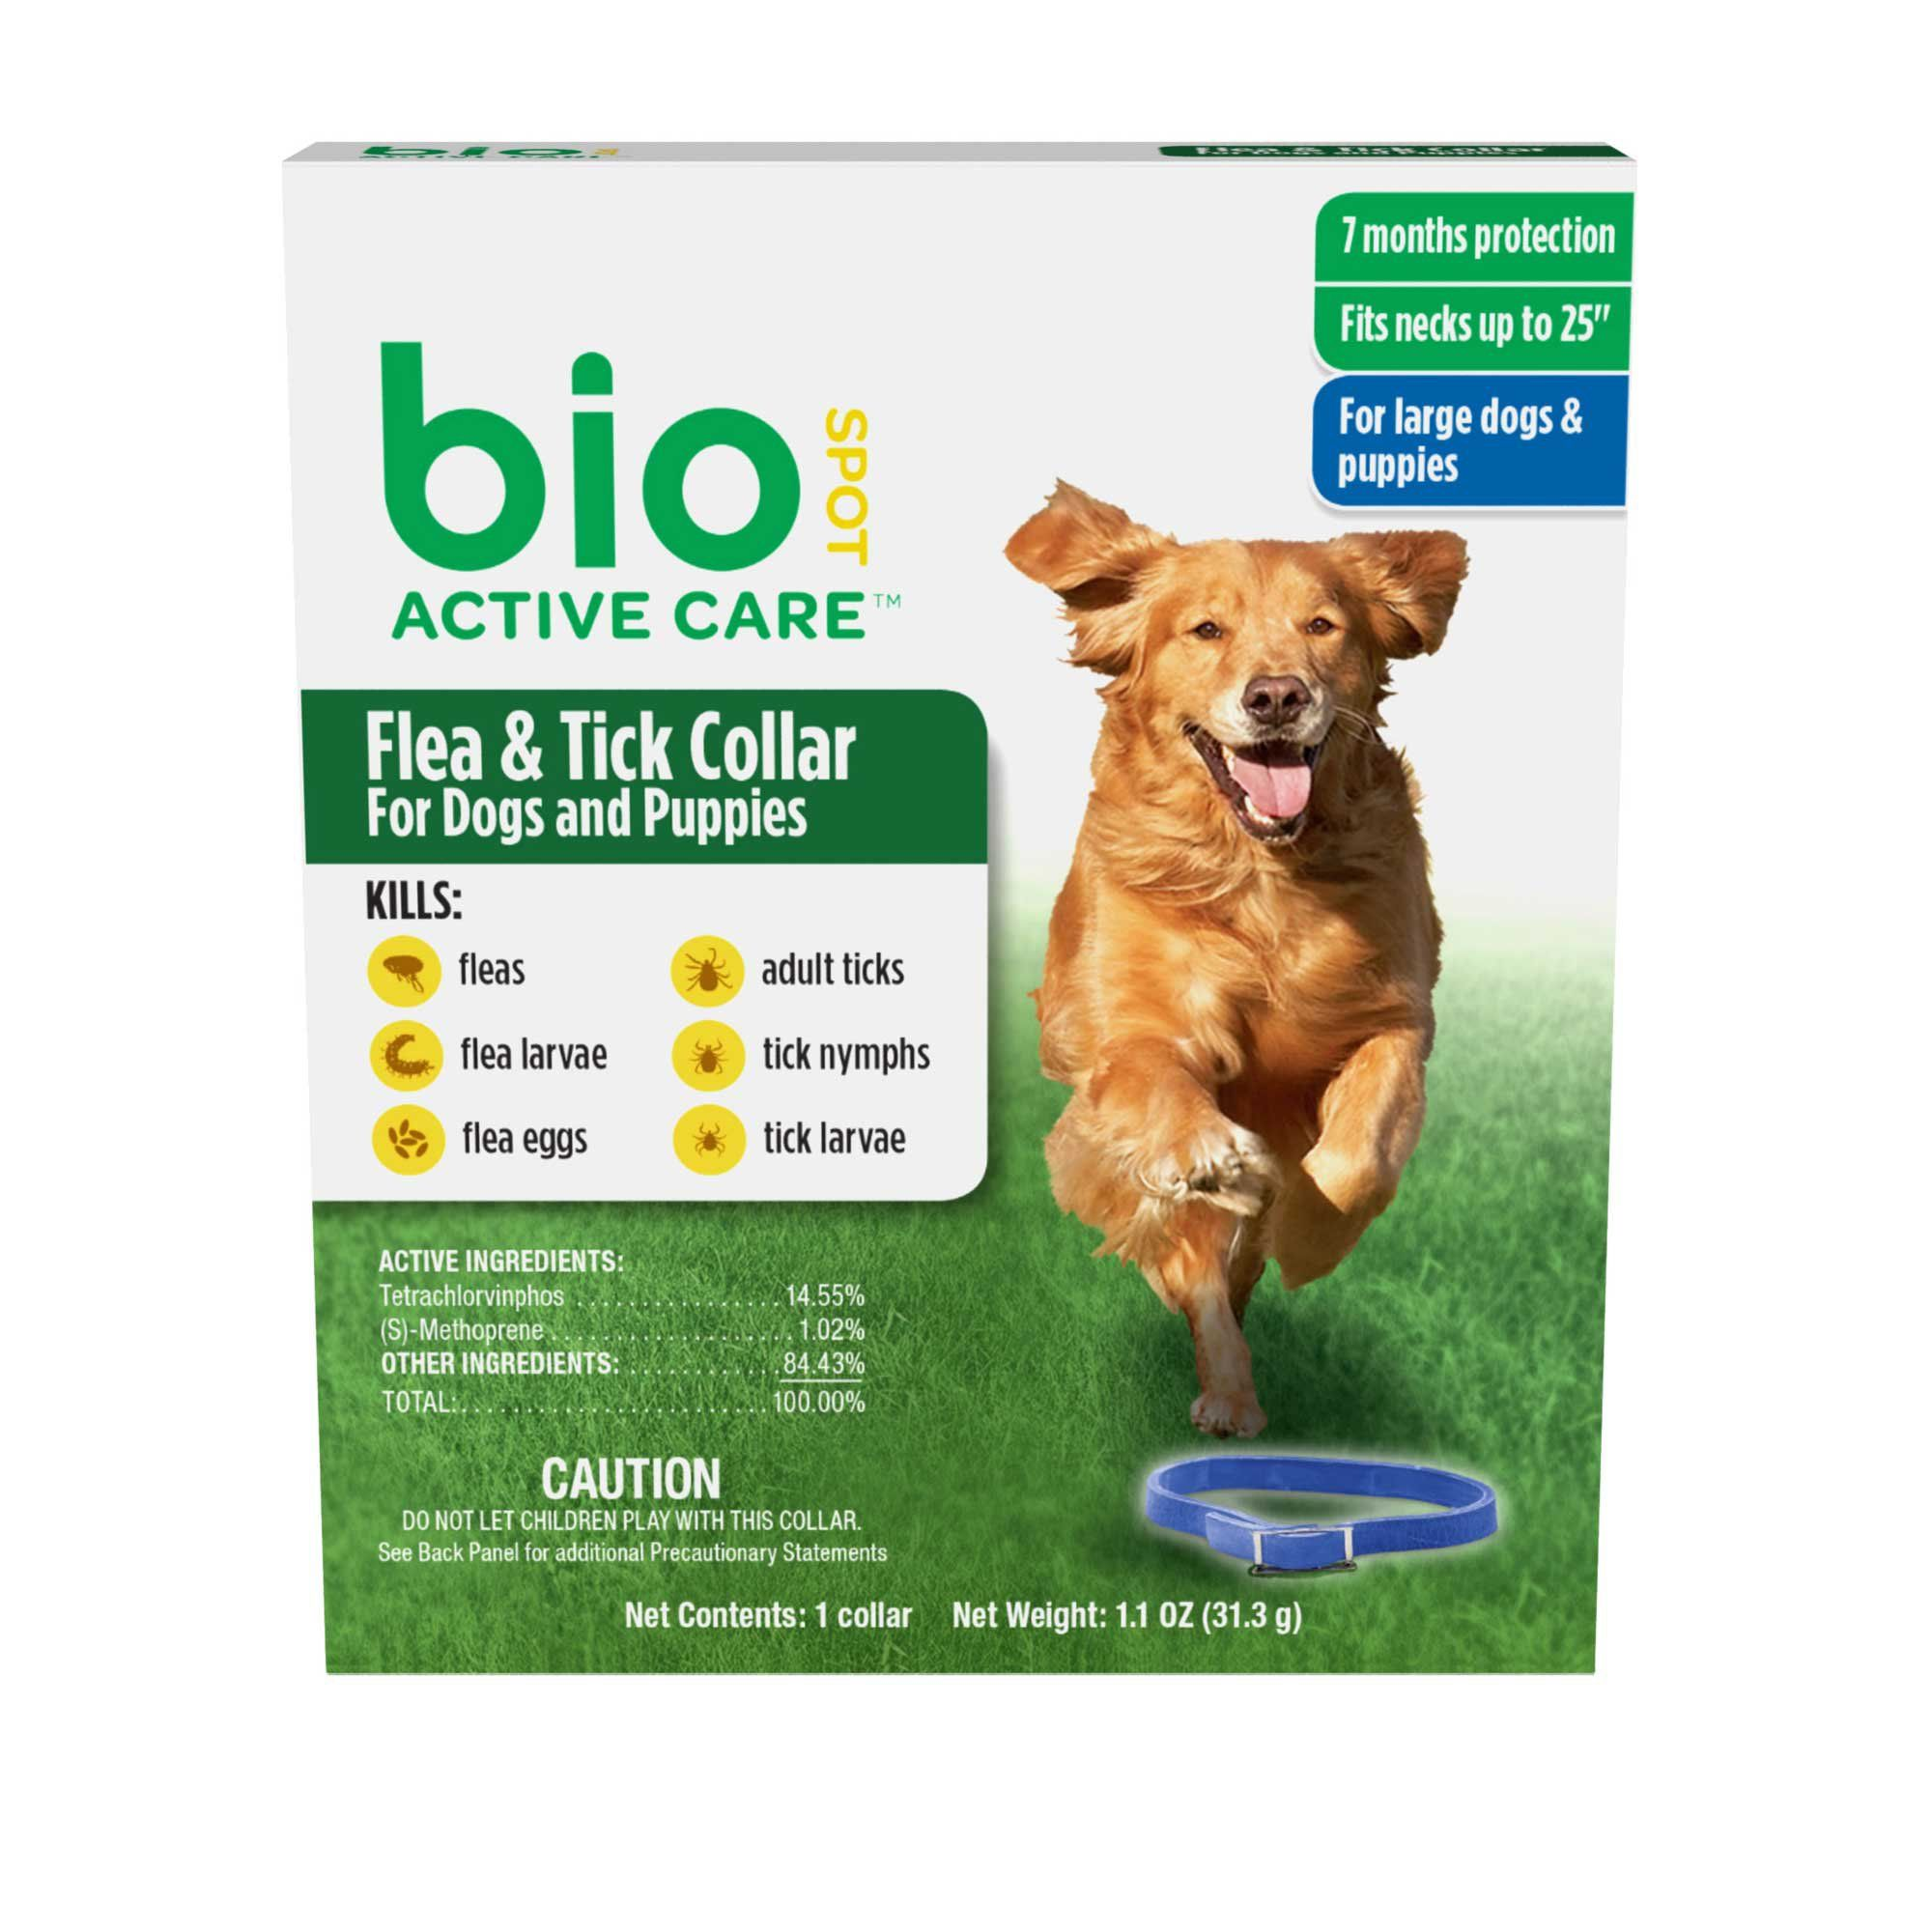 Bio Spot Active Care Flea Tick Dog Collar For Large Dogs Puppies In 2019 Products Ticks On Dogs Dogs Puppies Flea Tick